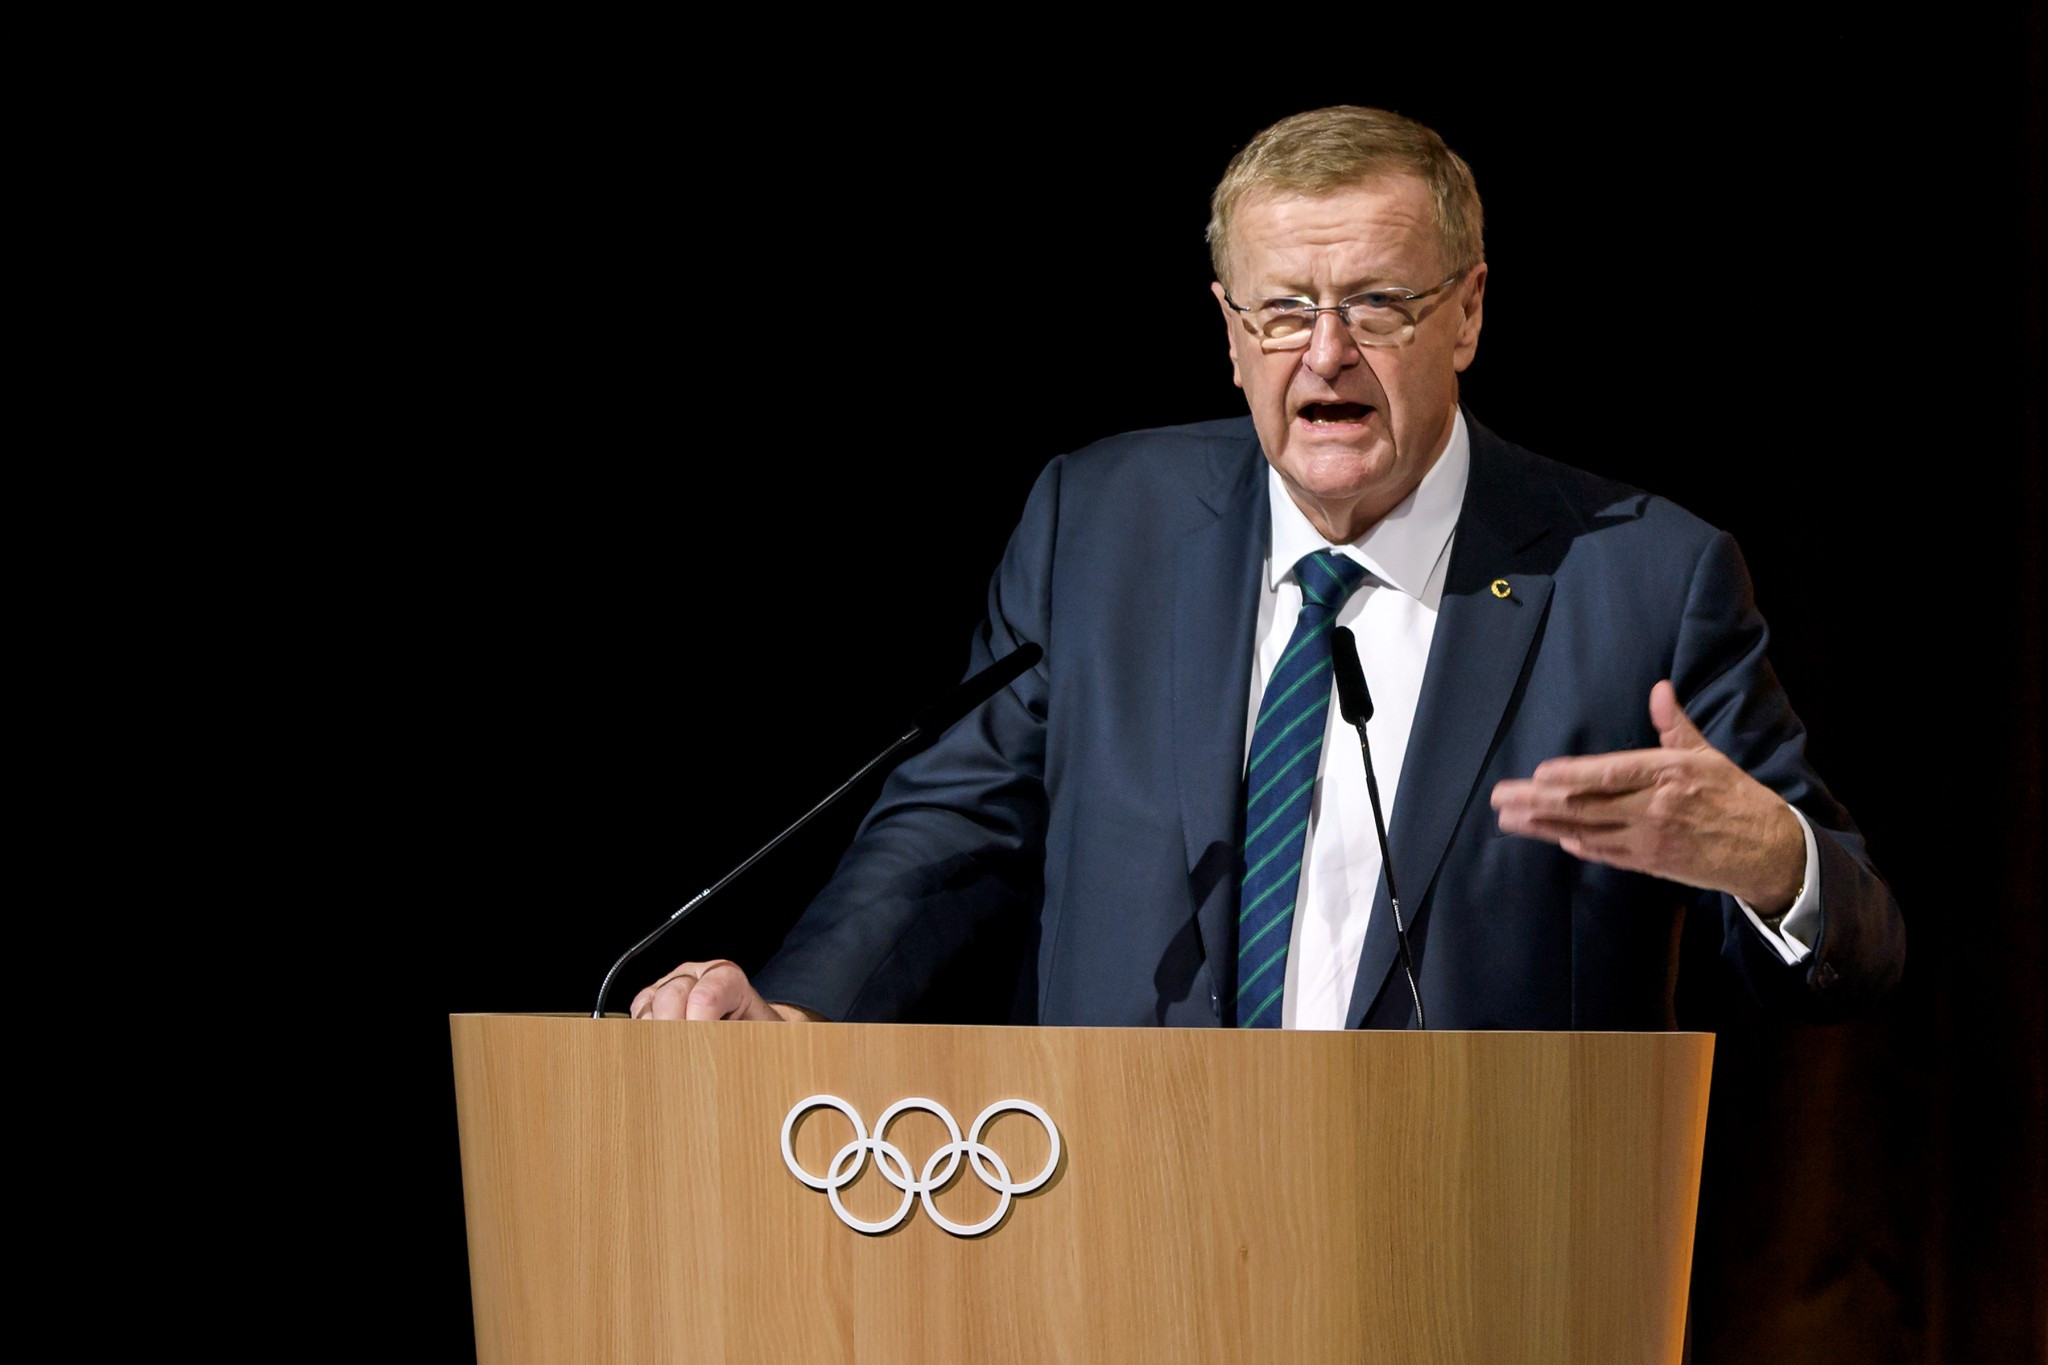 The review from The Ethics Centre will make uncomfortable reading for IOC vice-president John Coates, but the AOC President's knowledge was viewed as an asset to the organisation ©Getty Images